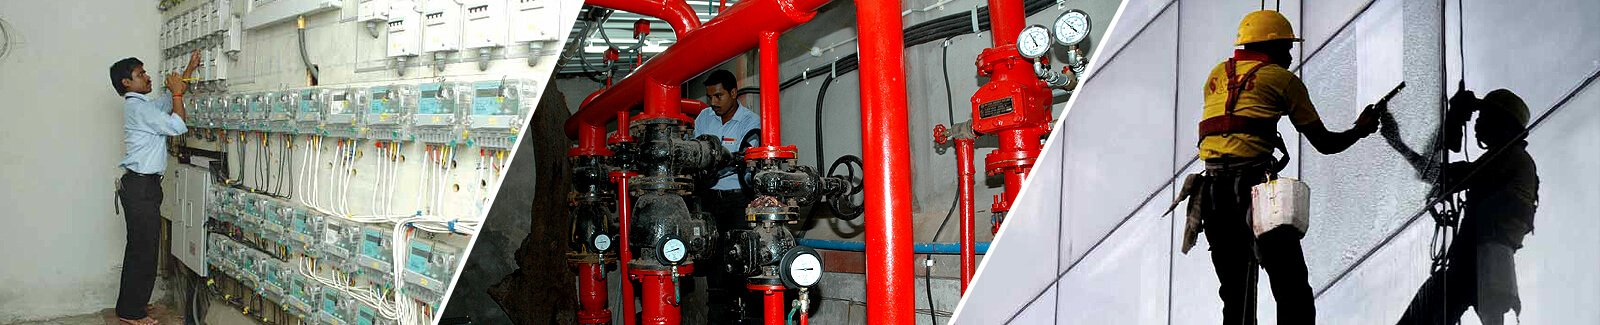 RepairMaintenance - Repair Maintenance Utilities Planned preventive maintenance and allied documentation need to be maintained at individual sites. For this we have got in-house designed structured PPM check list and formats to ensure trouble free services.